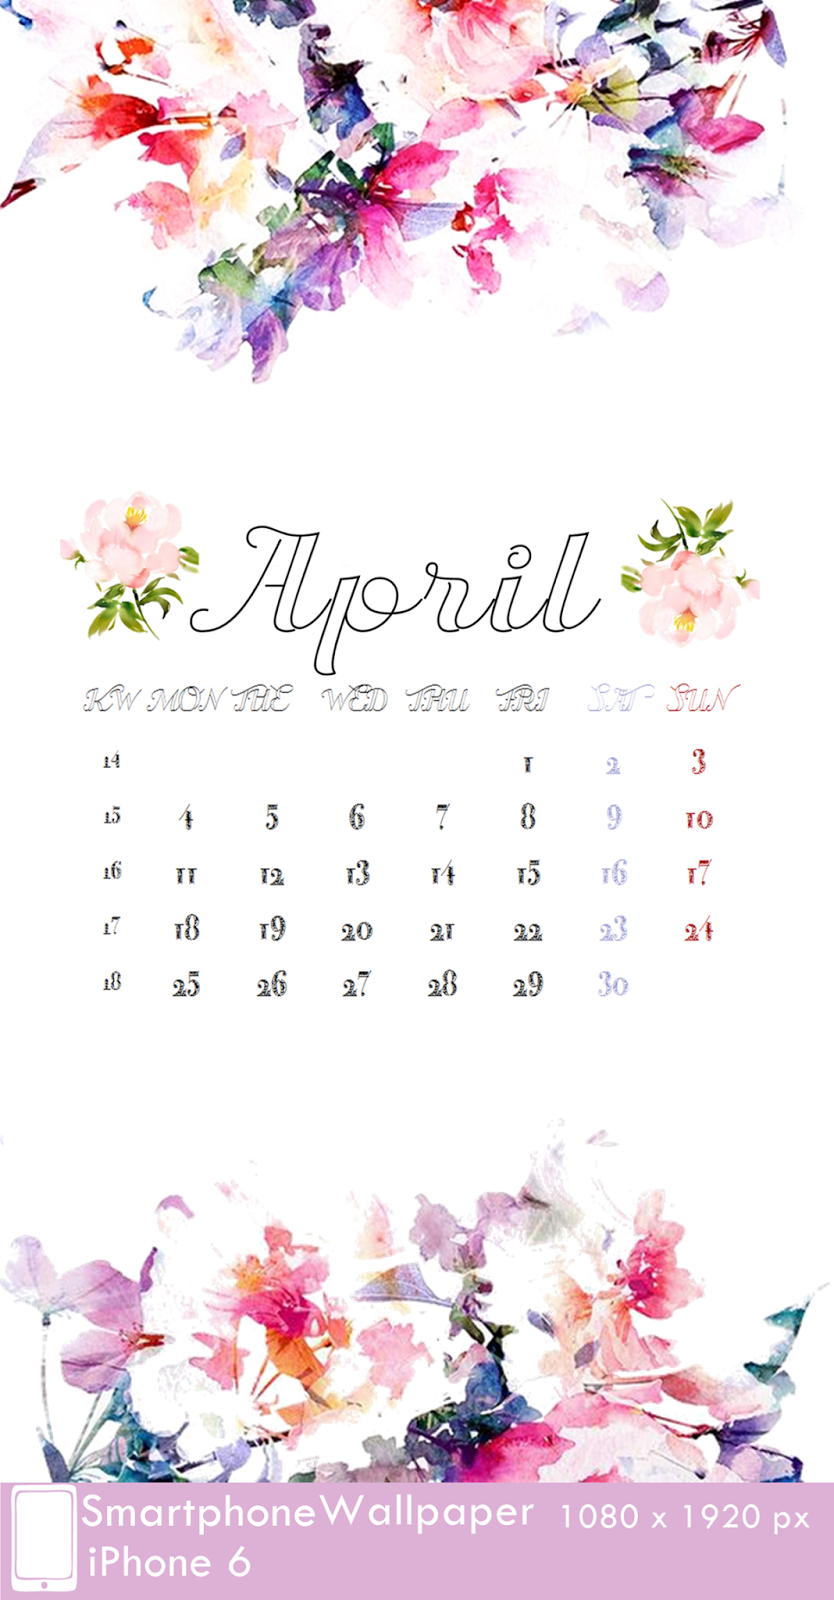 iPhone 6 Wallpaper Calendar 4 April 1080 x 1920 px